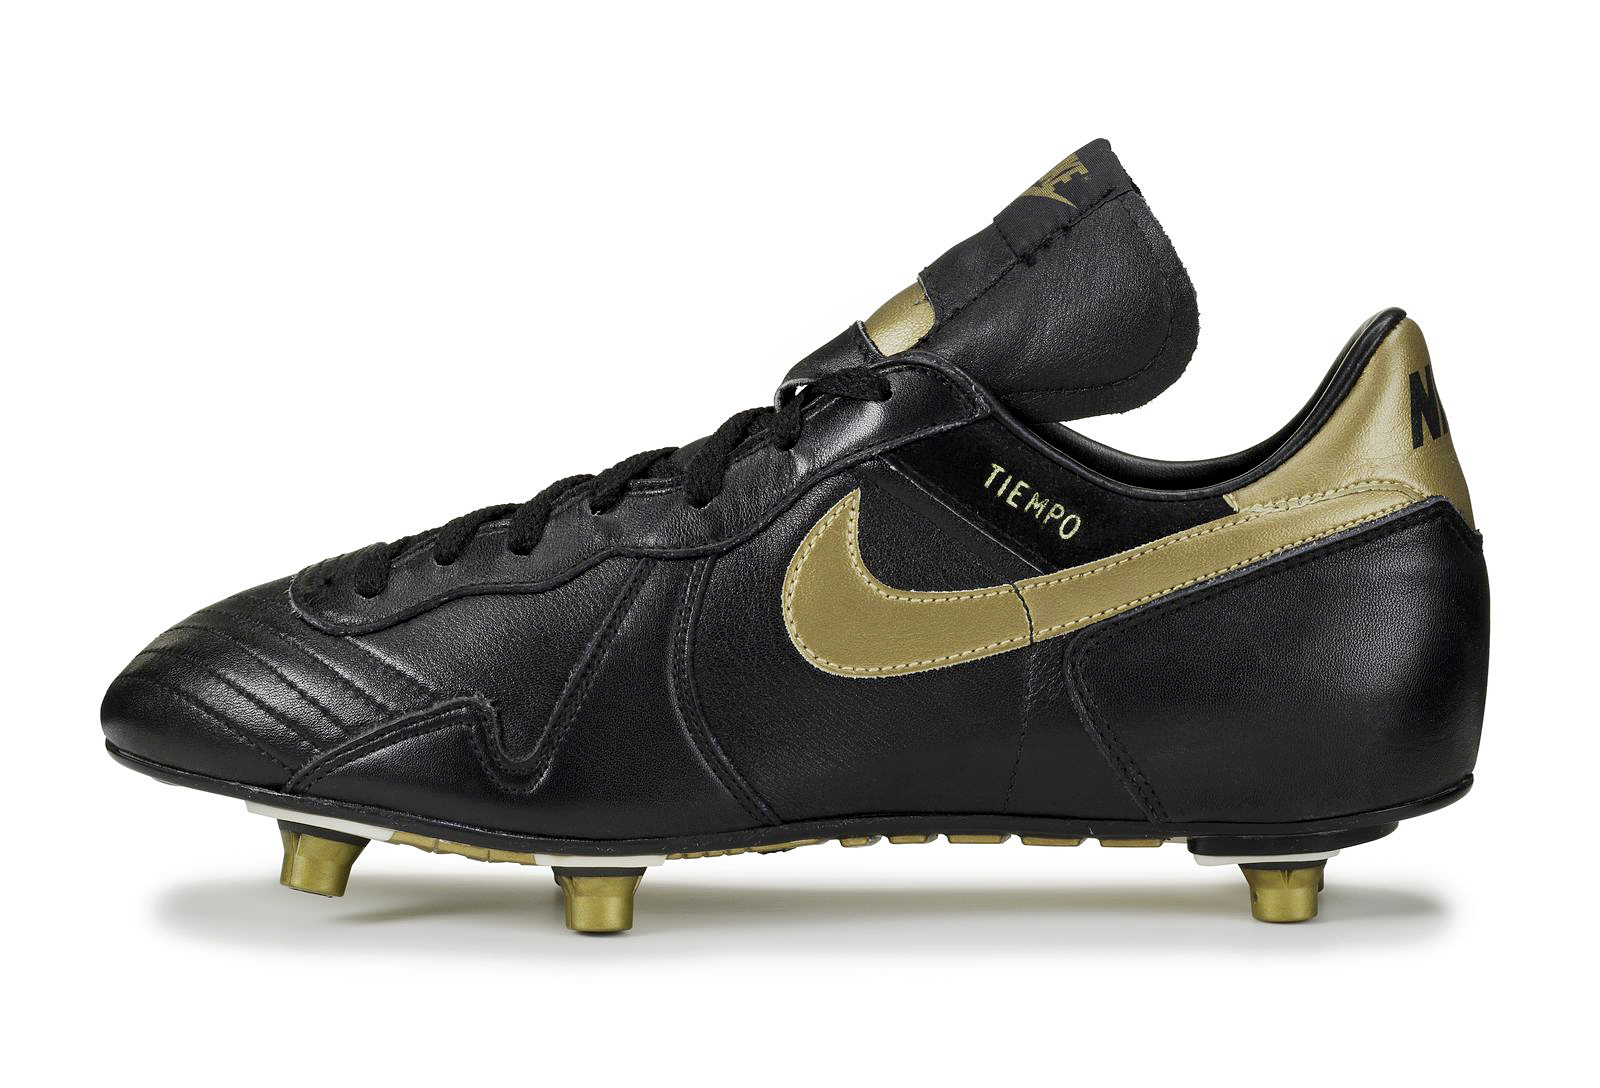 Classic Nike Soccer Shoes